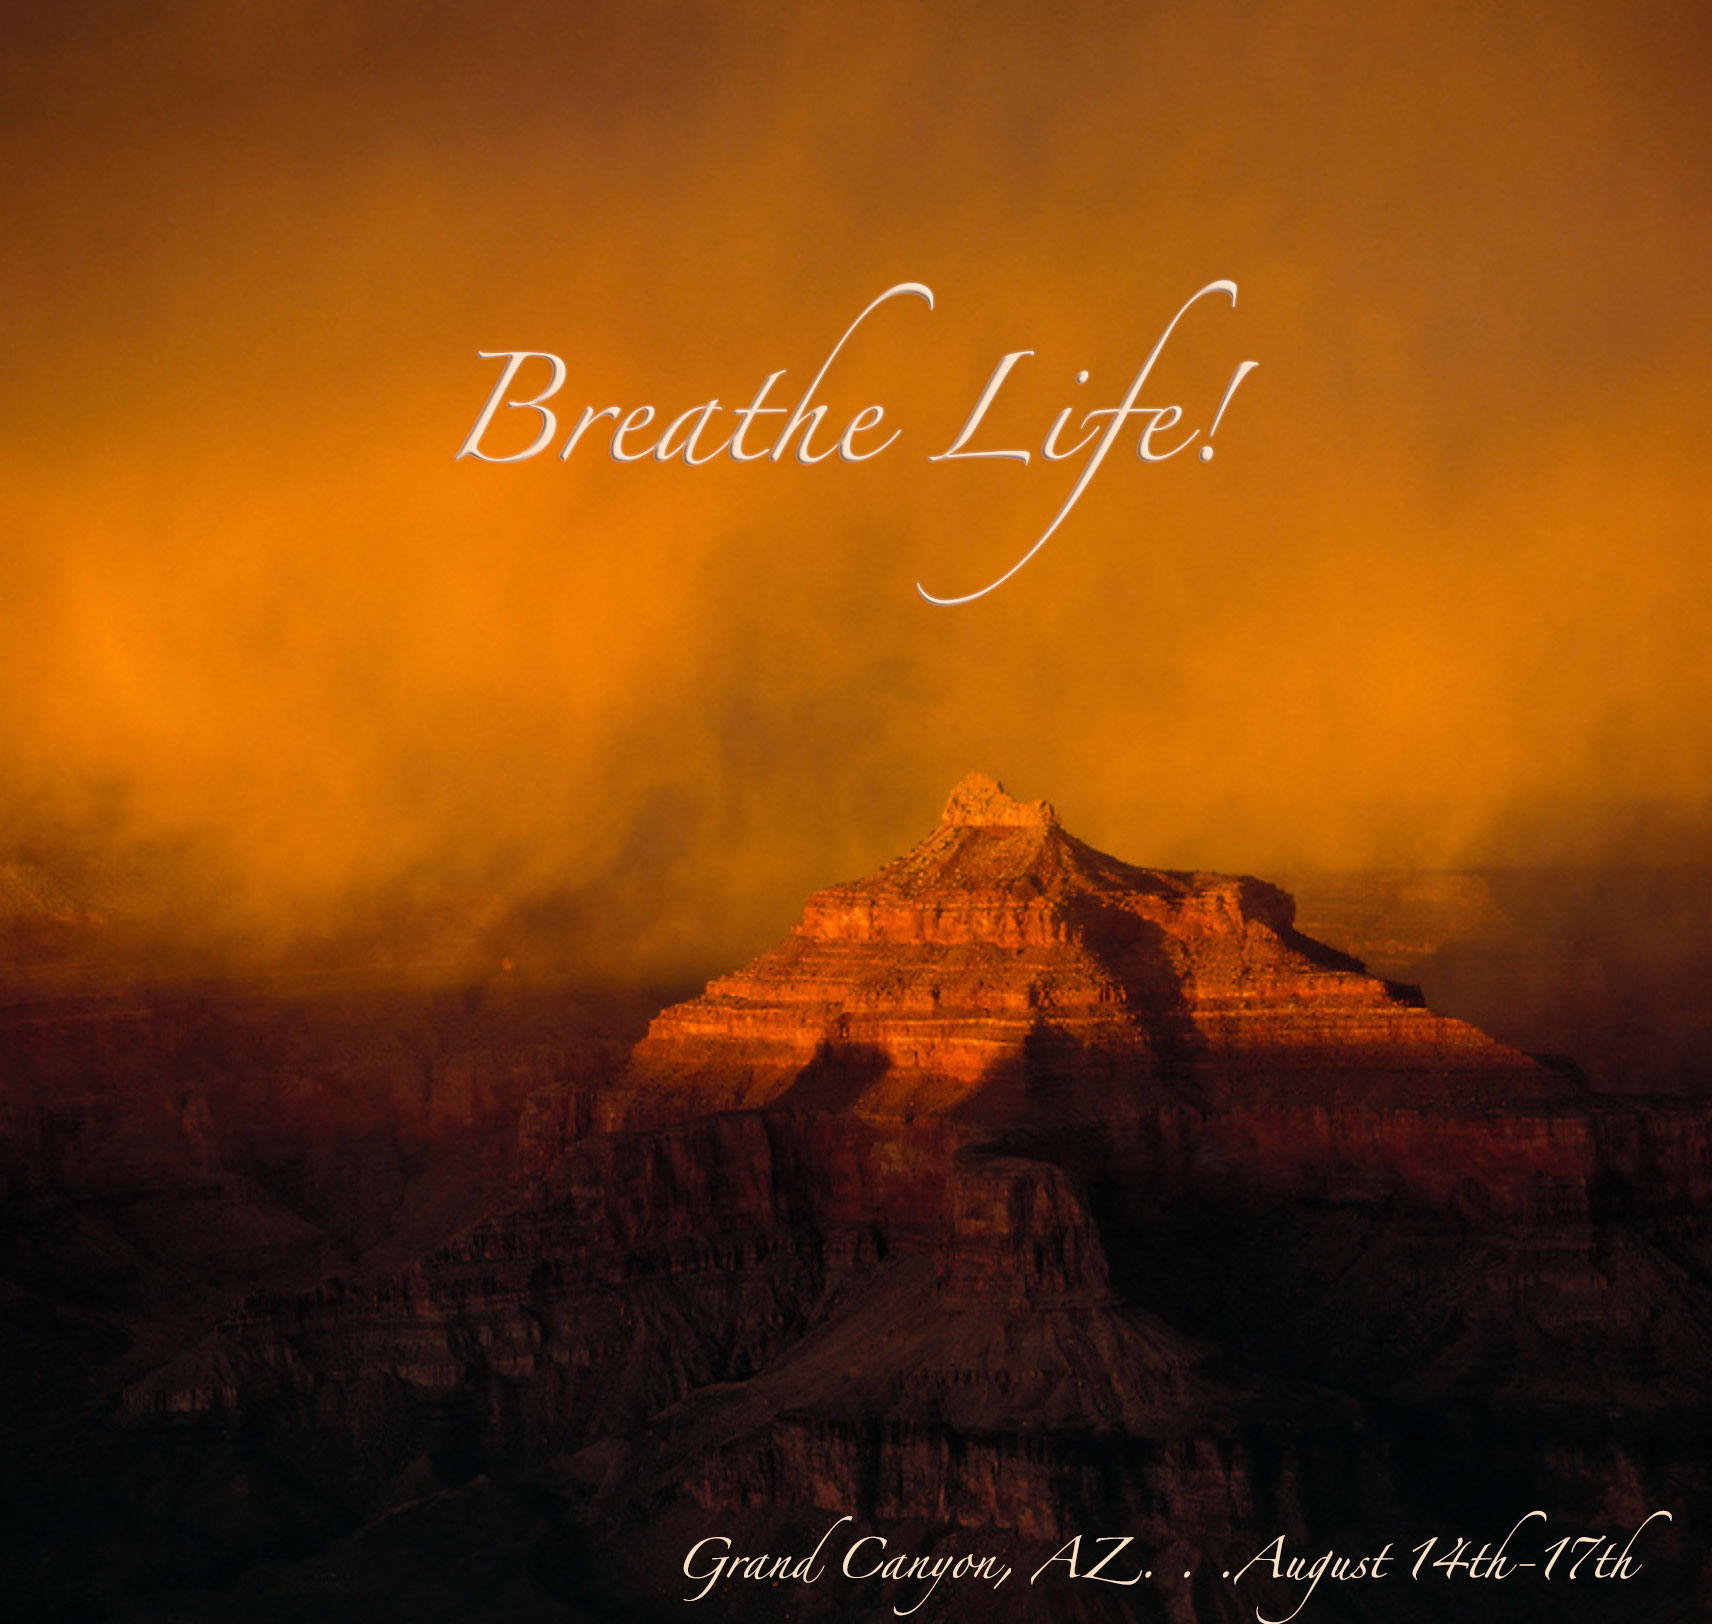 breathelifecreen-Shot-2017-06-26-at-12.31.17-PM